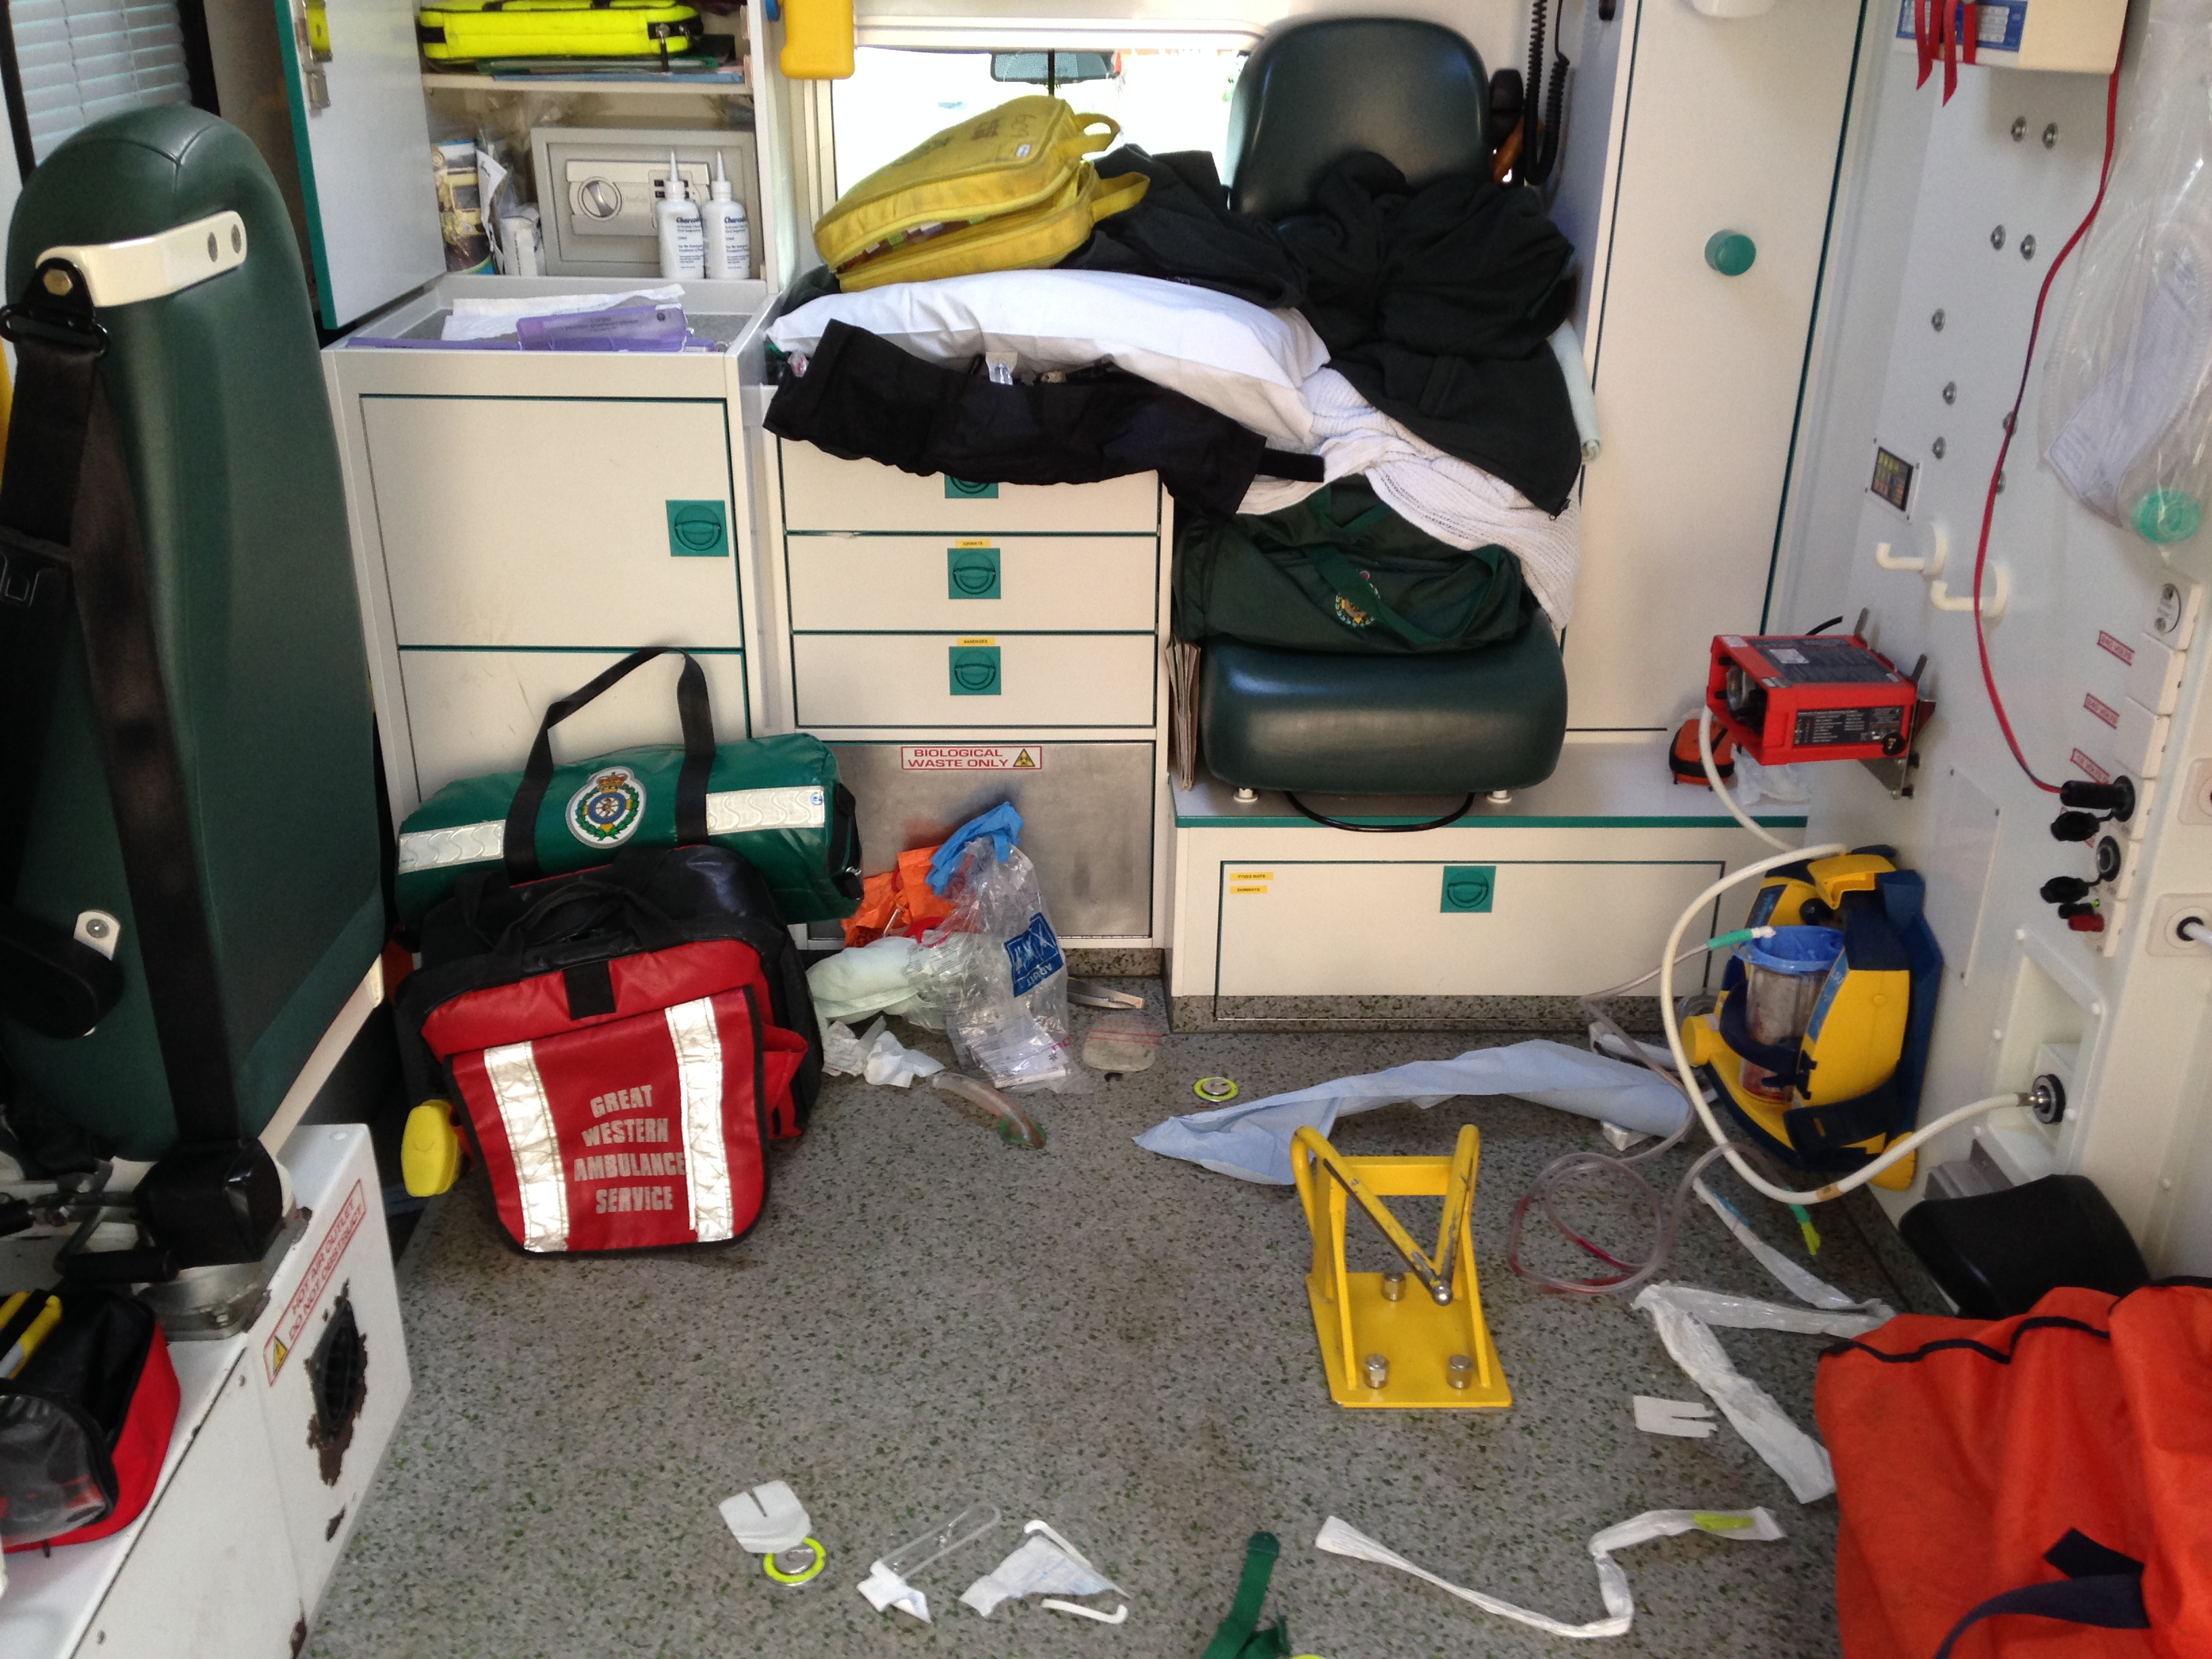 ambulance-mess